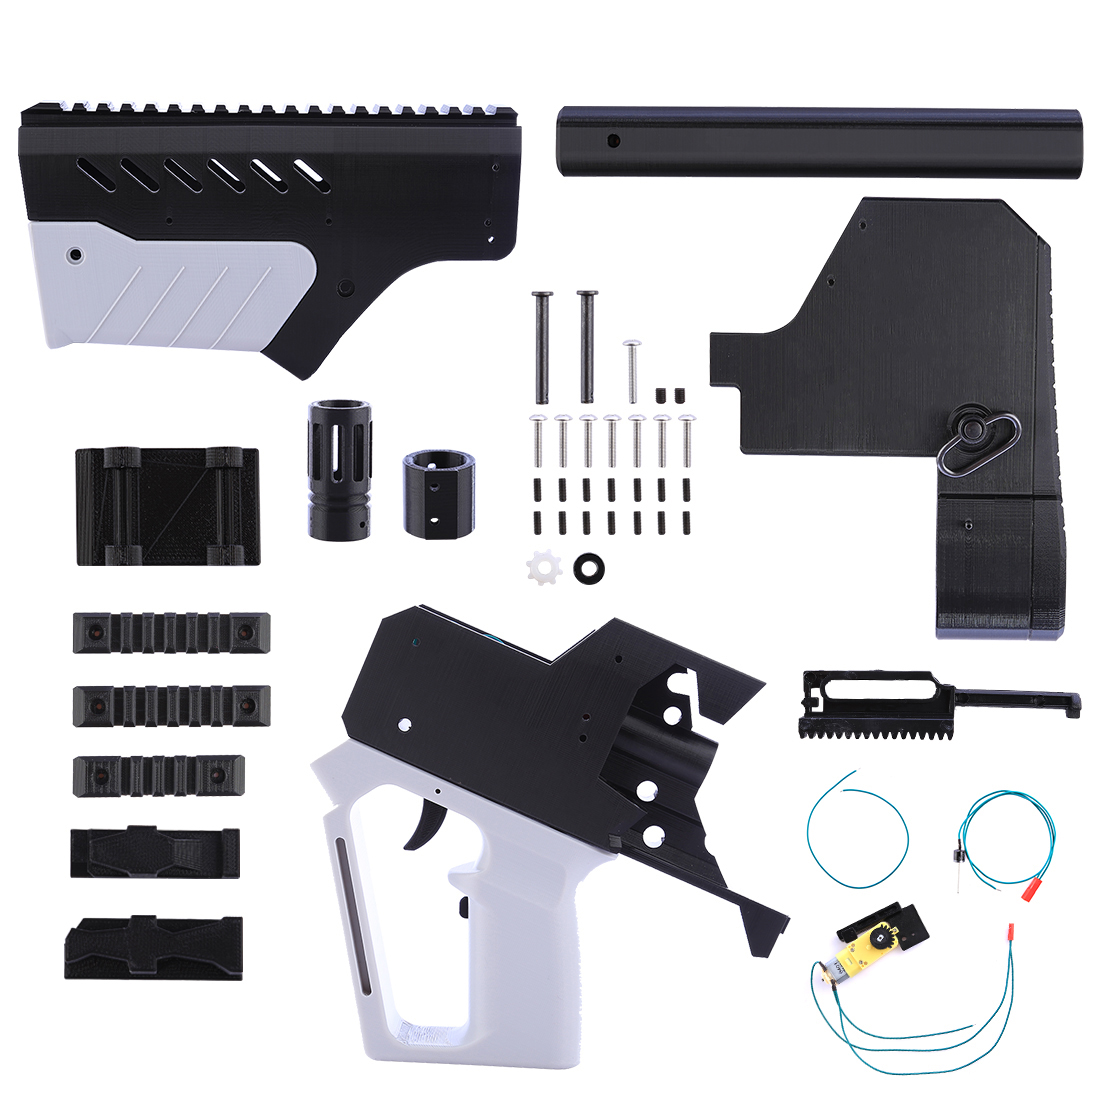 Surwish Appearence Full-automatic MXD-C Short Type Modified Kit for Nerf Stryfe - Grey + Black 30 mxd 3000 30